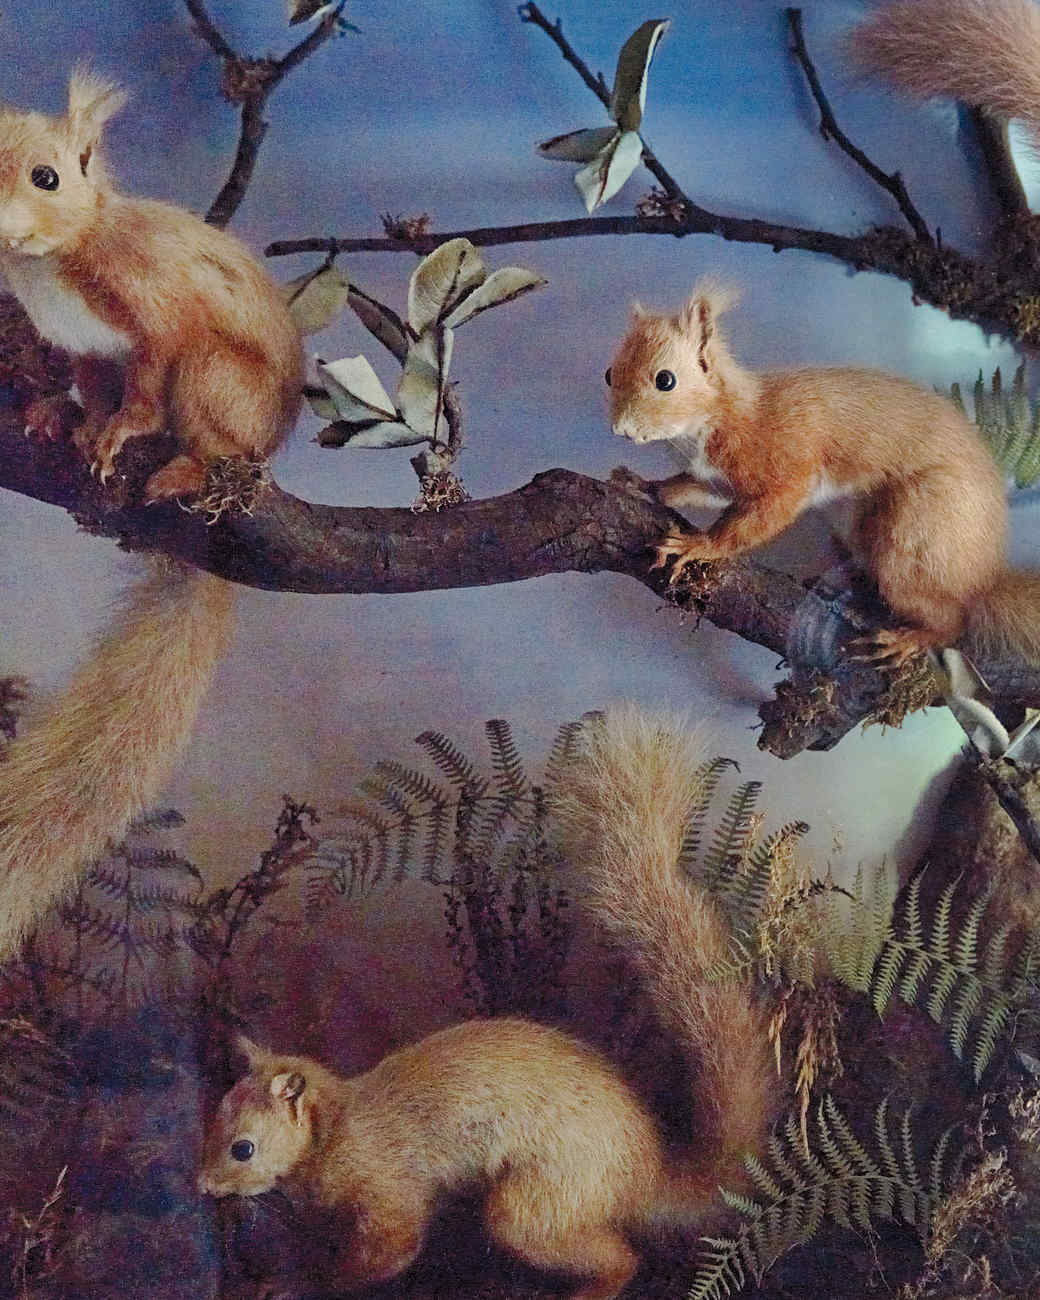 squirrels-taxidermy-1011mld106418.jpg